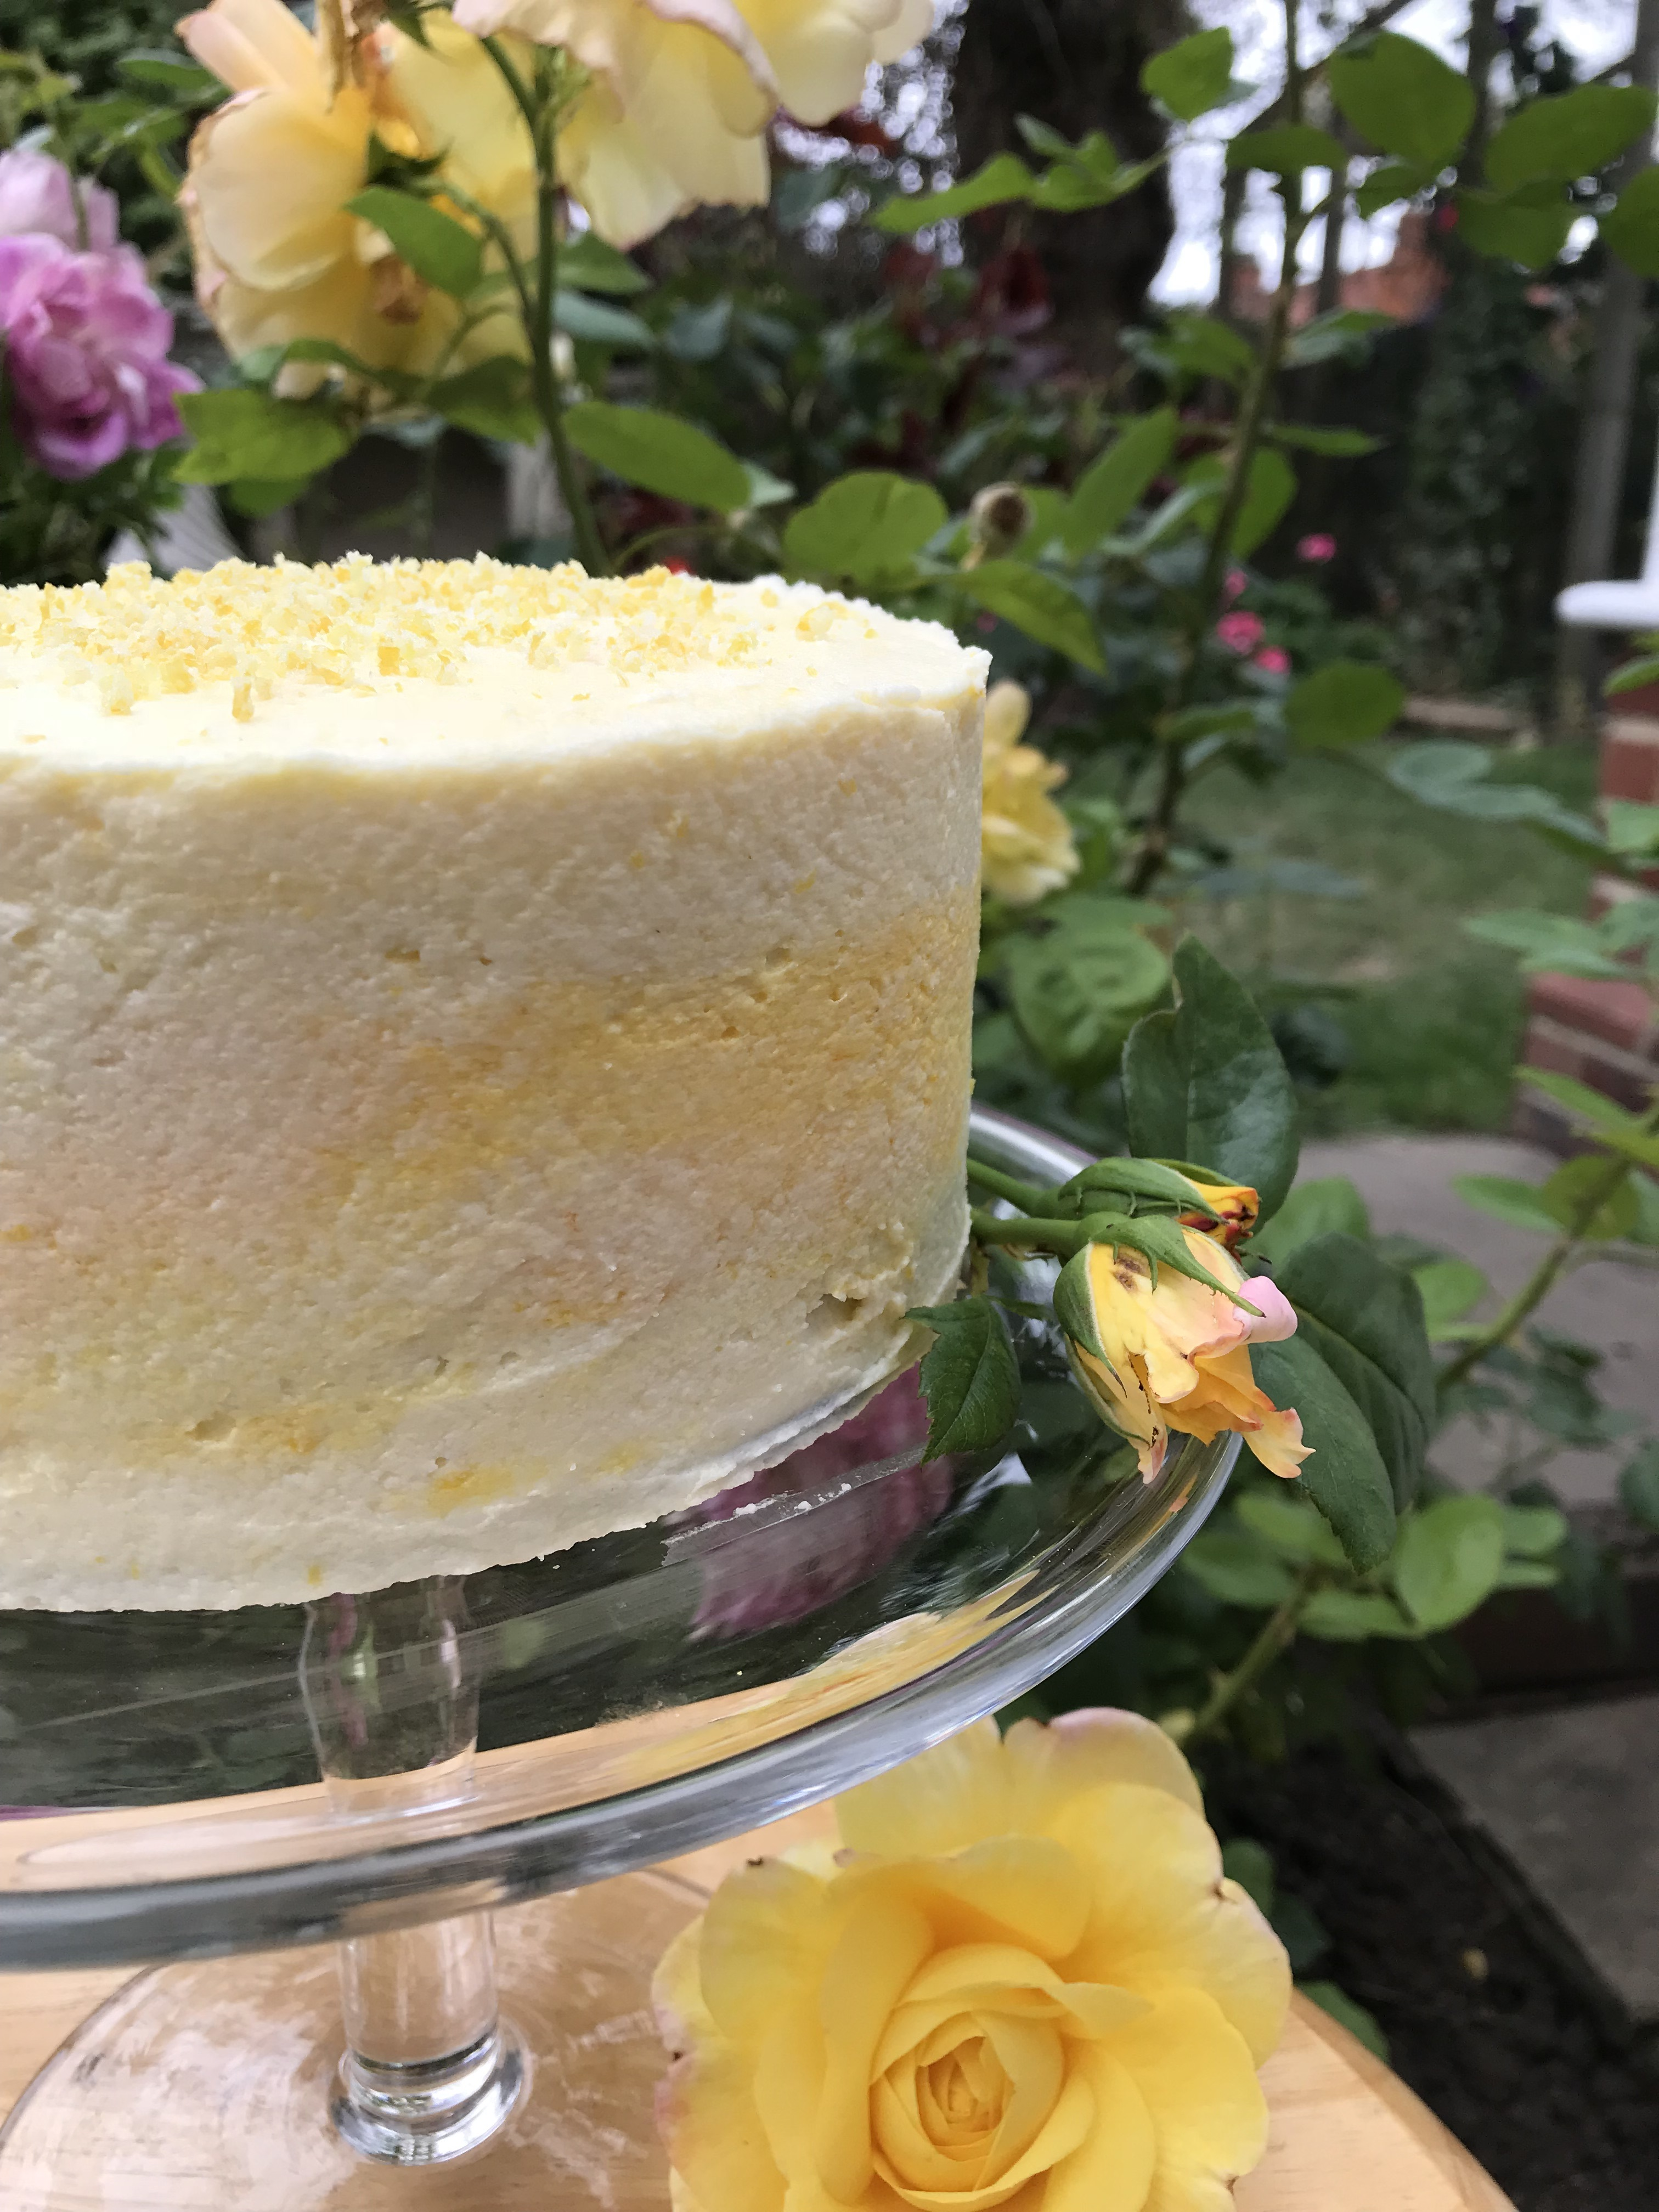 Lemon and Elderflower Cake with a not too sweet frosting